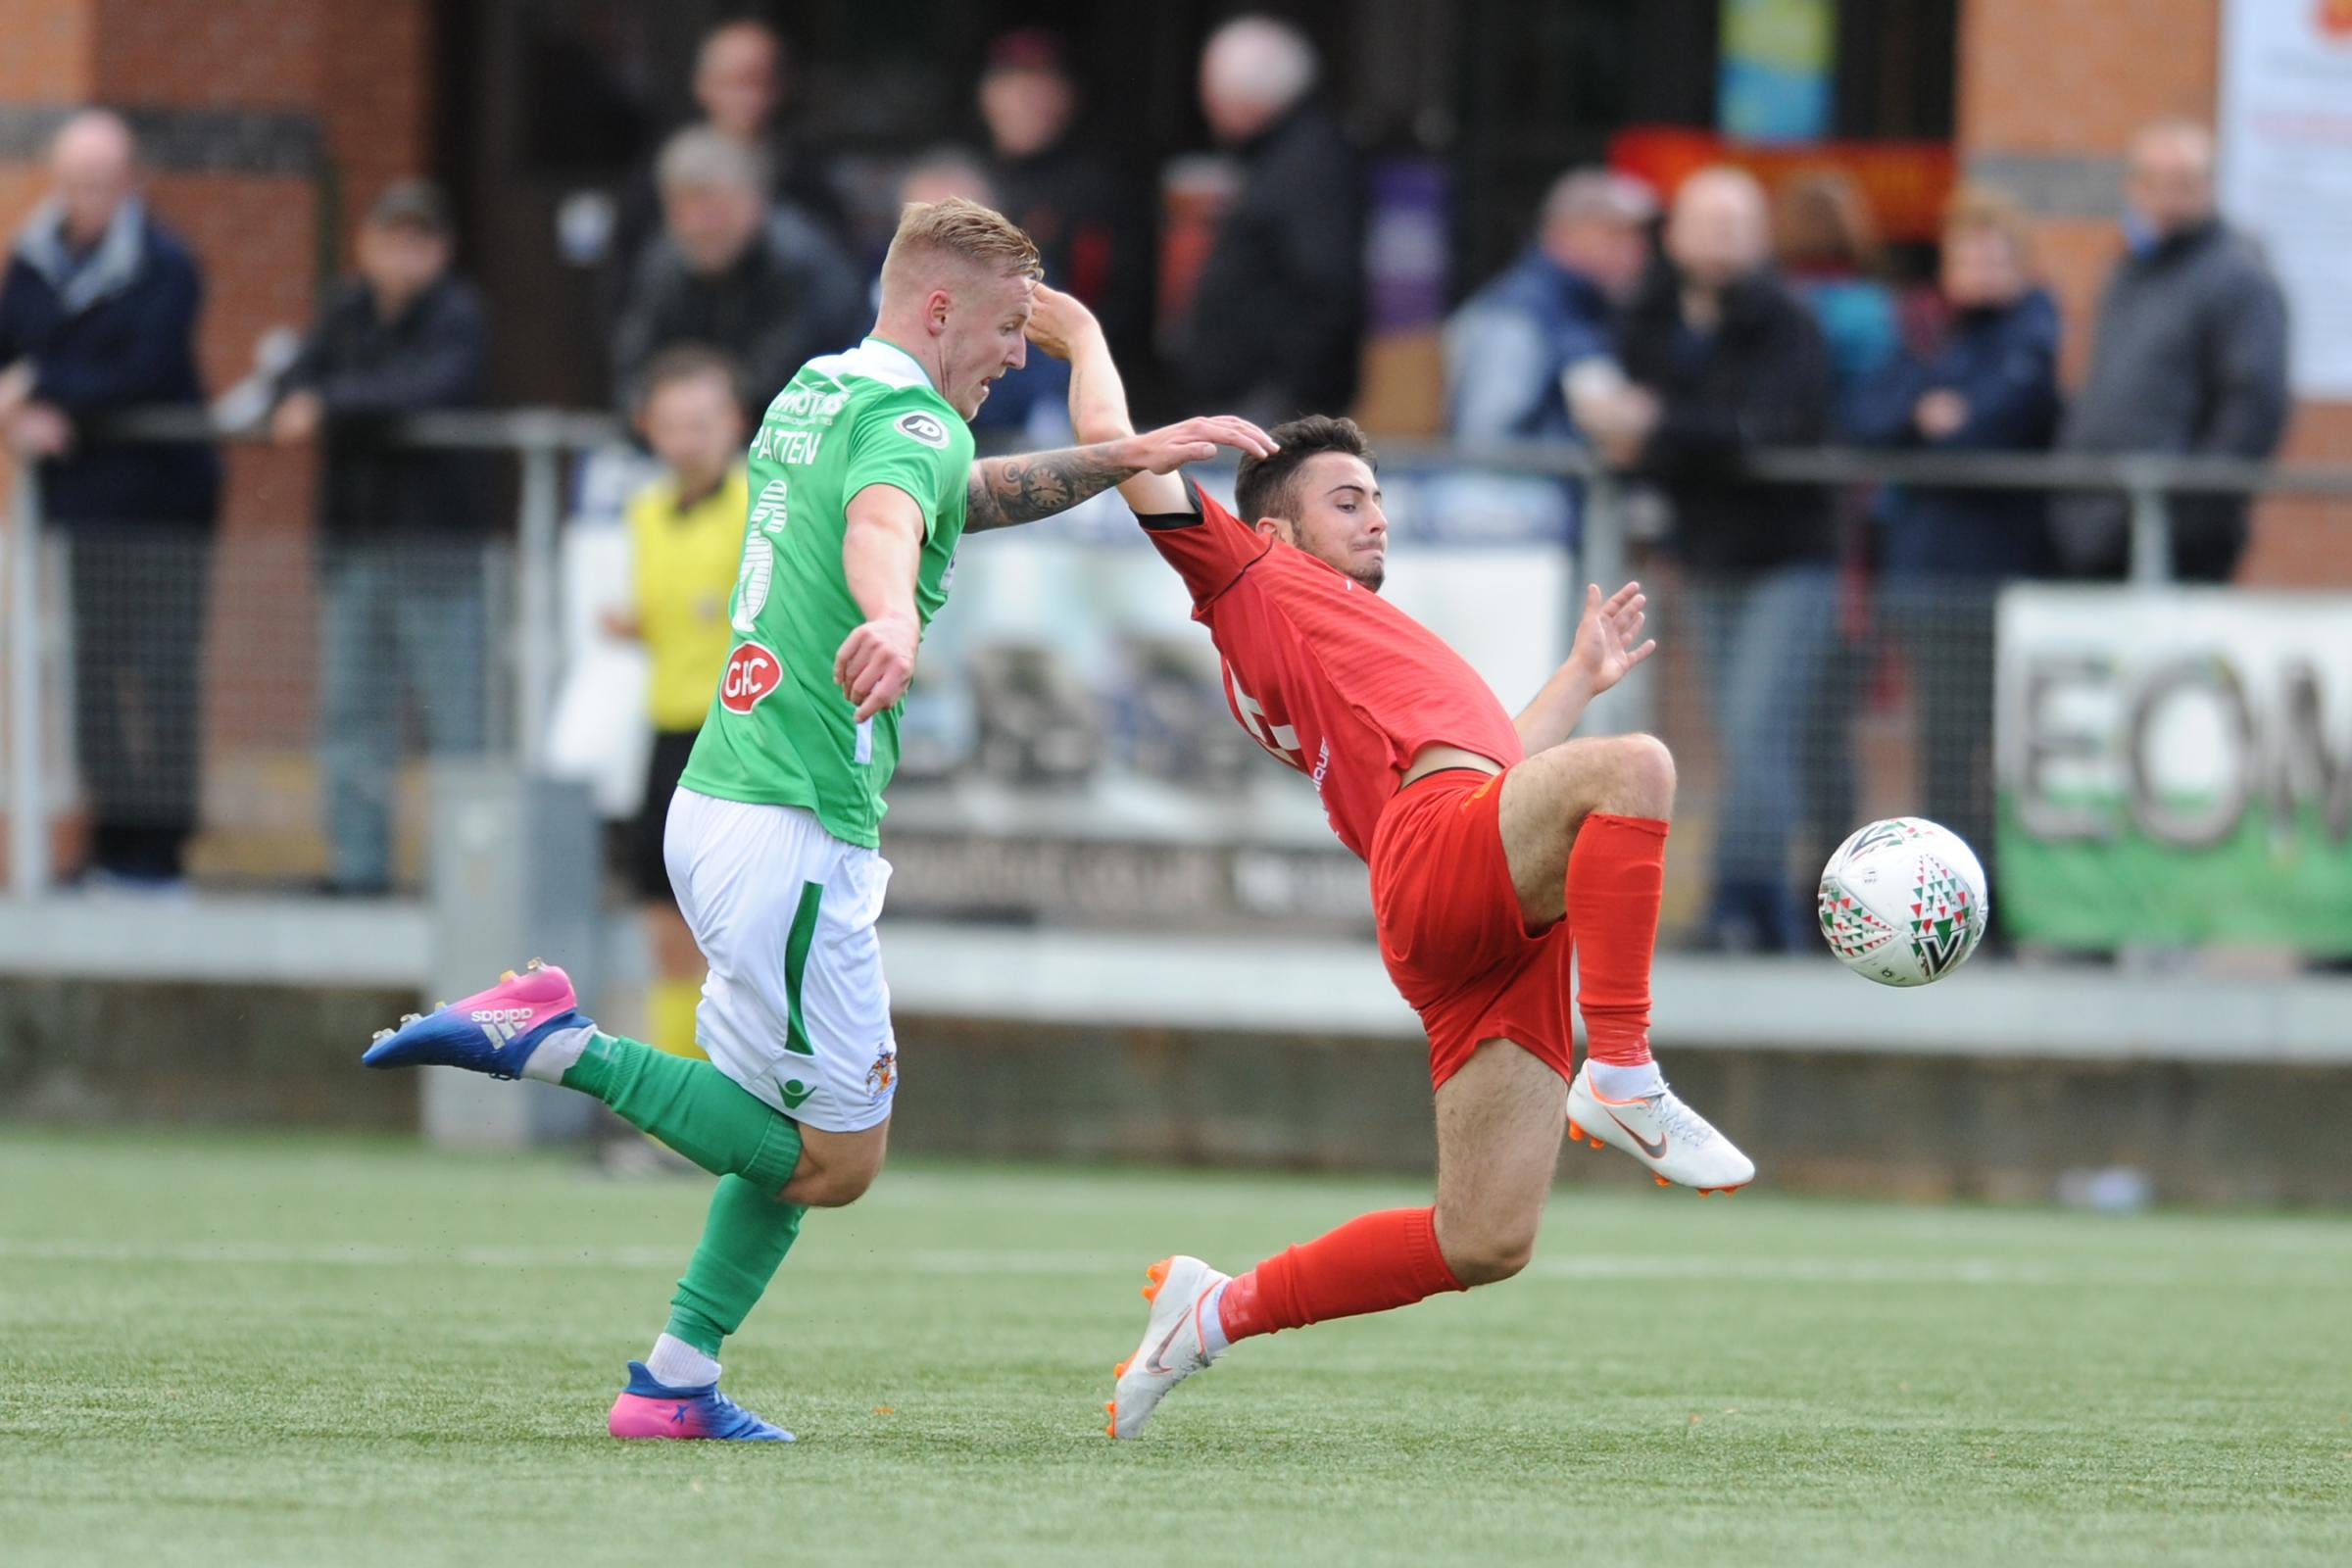 6/10/2018 - Sam Phillips of Newtown stretches for a loose ball during the JD Welsh Premier fixture between Newtown AFC and Barry Town United at Latham Park...Pic: Mike Sheridan/County Times.MS230-2018.